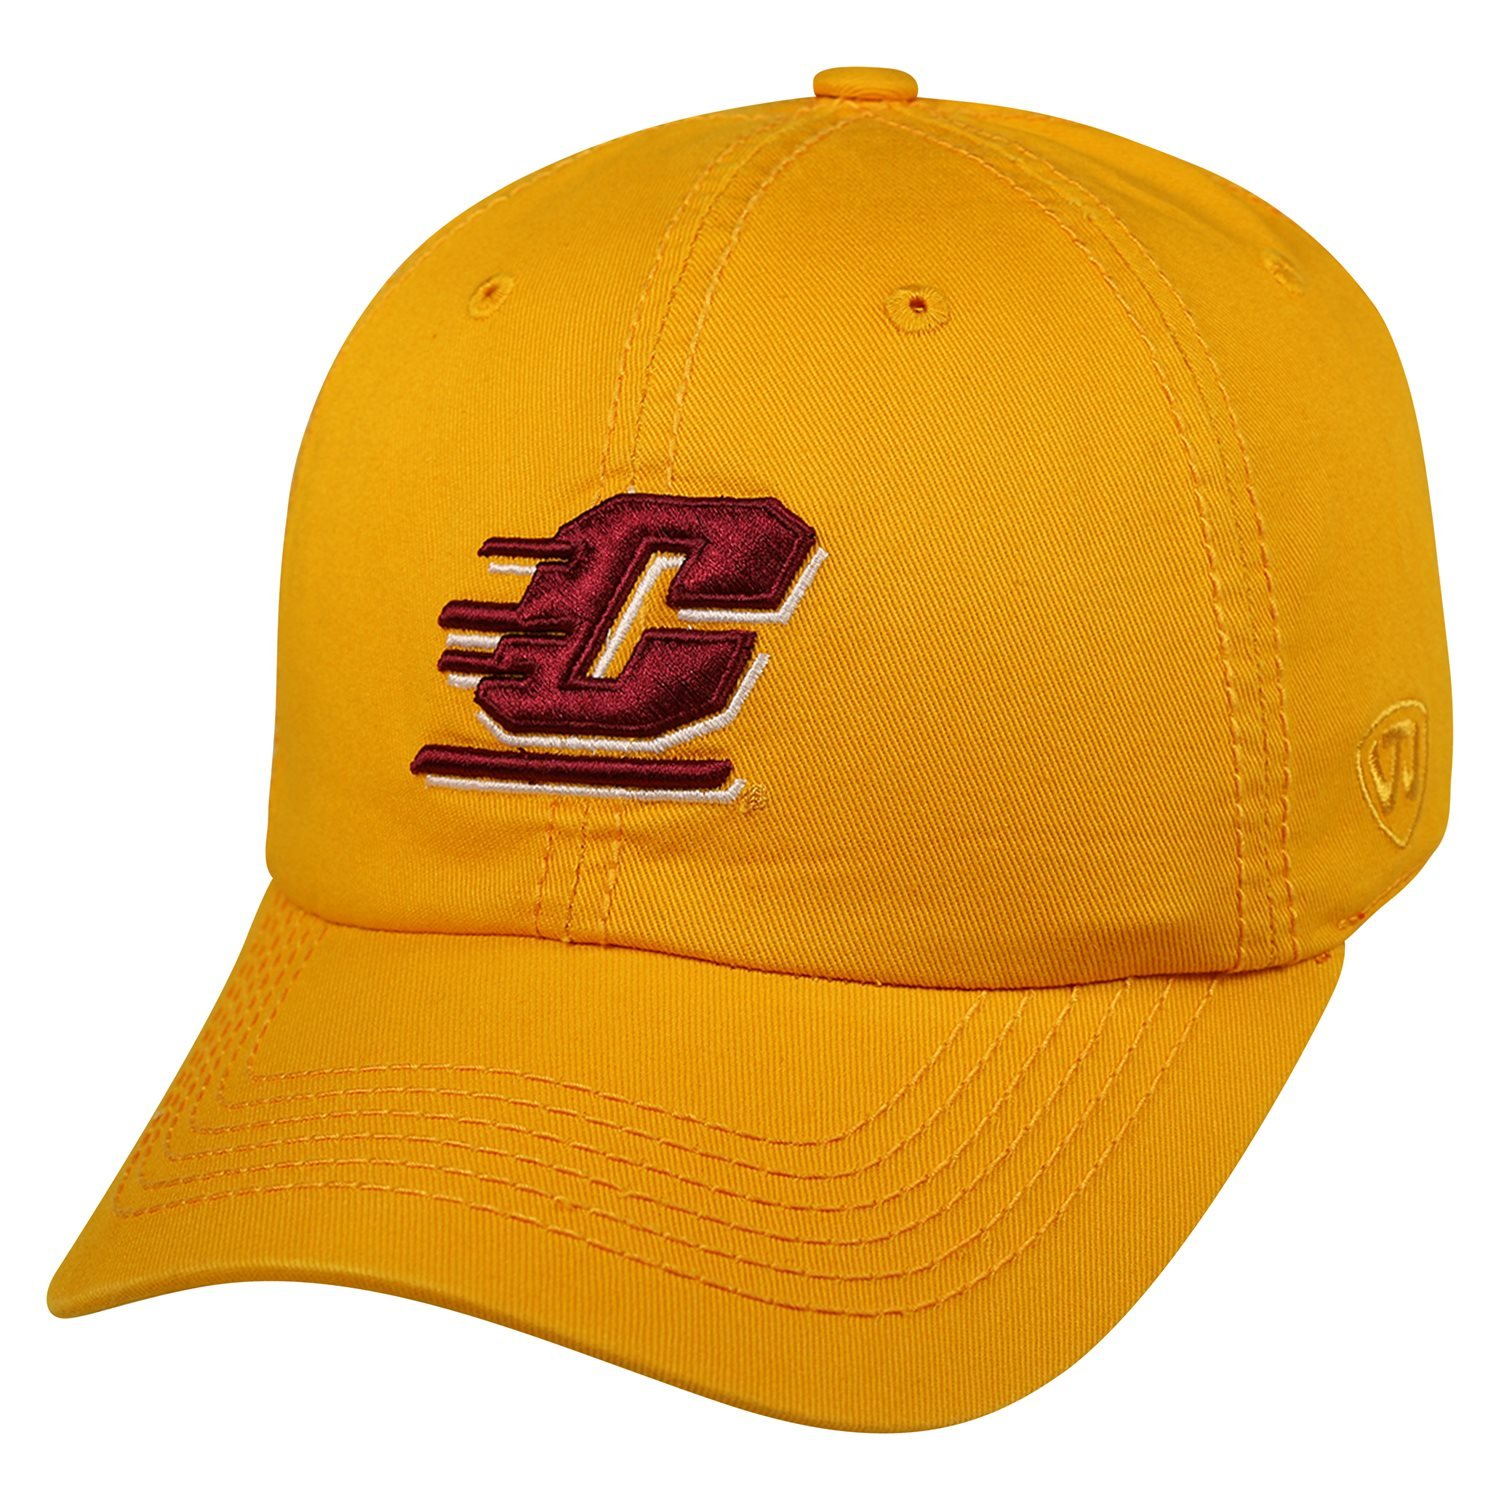 dc04498596ec7 Amazon.com  Top of the World NCAA Central Michigan Chippewas Relaxed Fit Adjustable  Hat